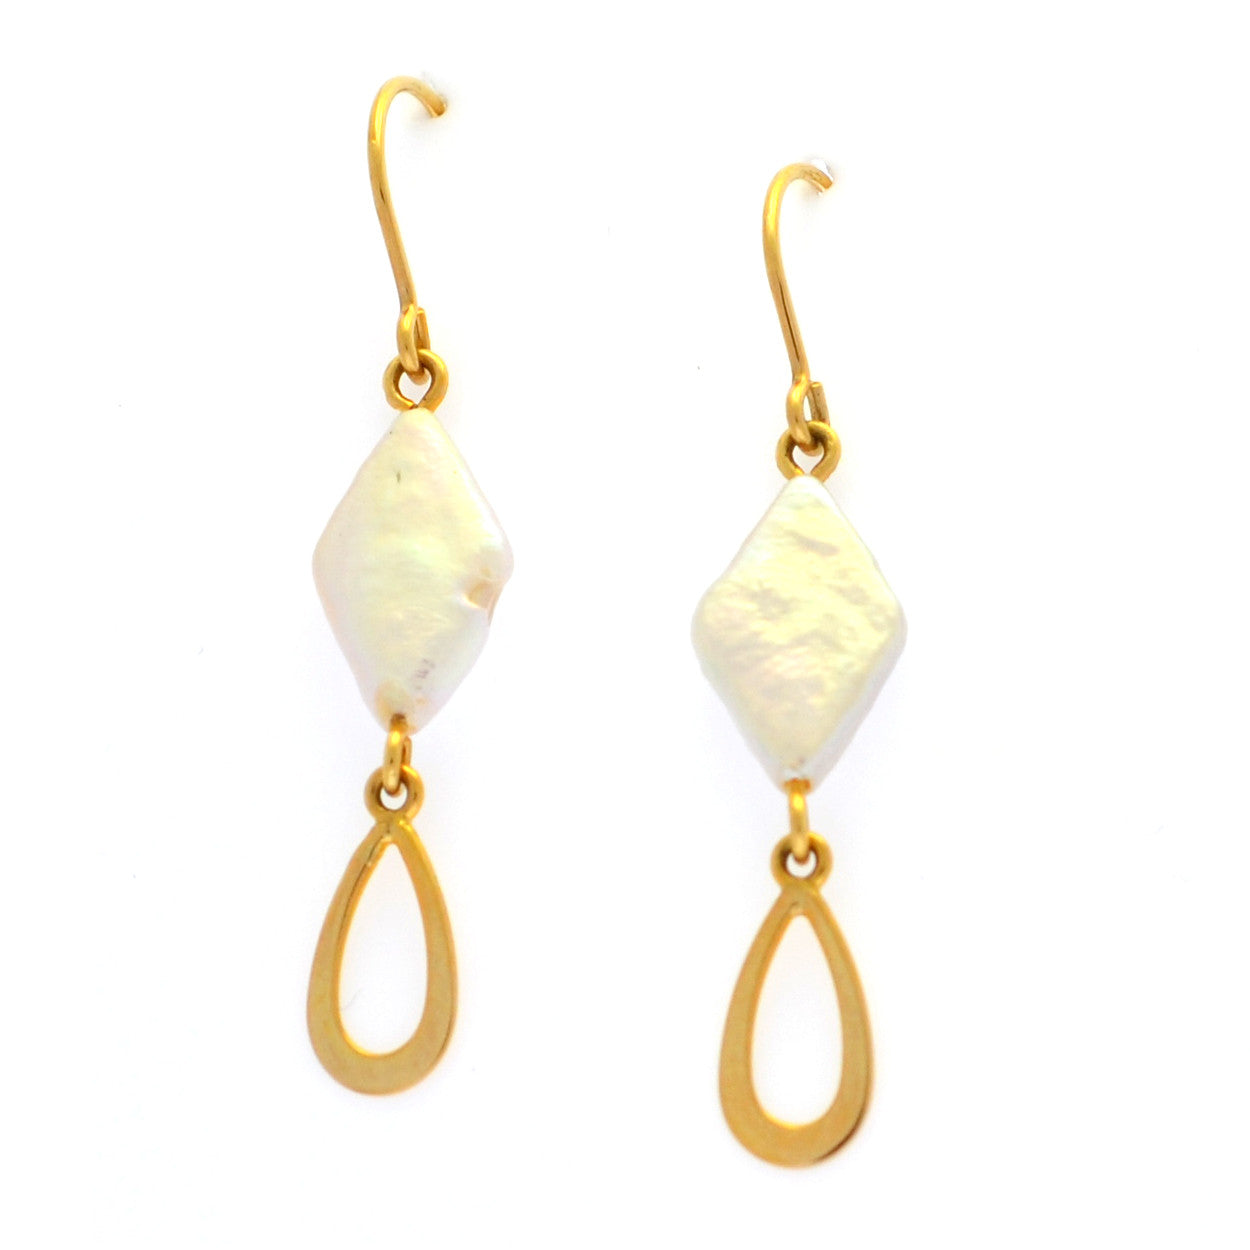 Freshwater pearl and yellow gold dangle earrings